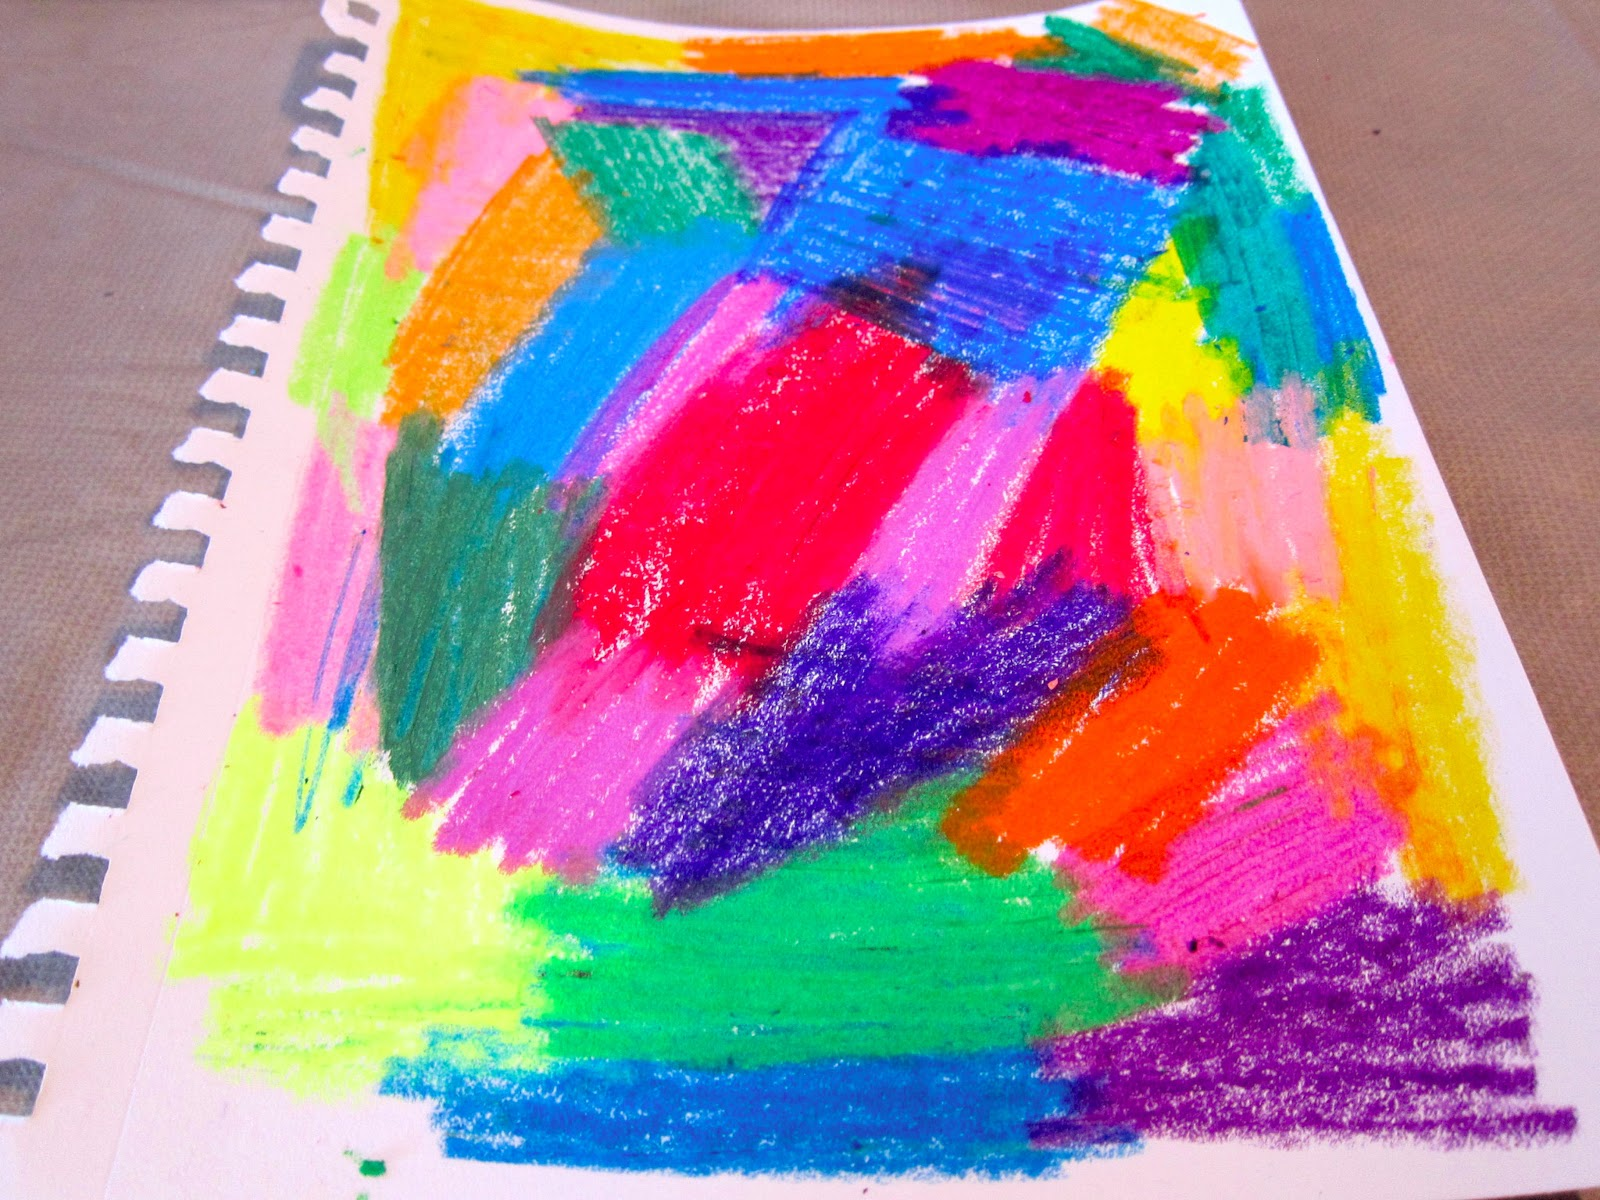 Crayon Transfer Technique at Artists